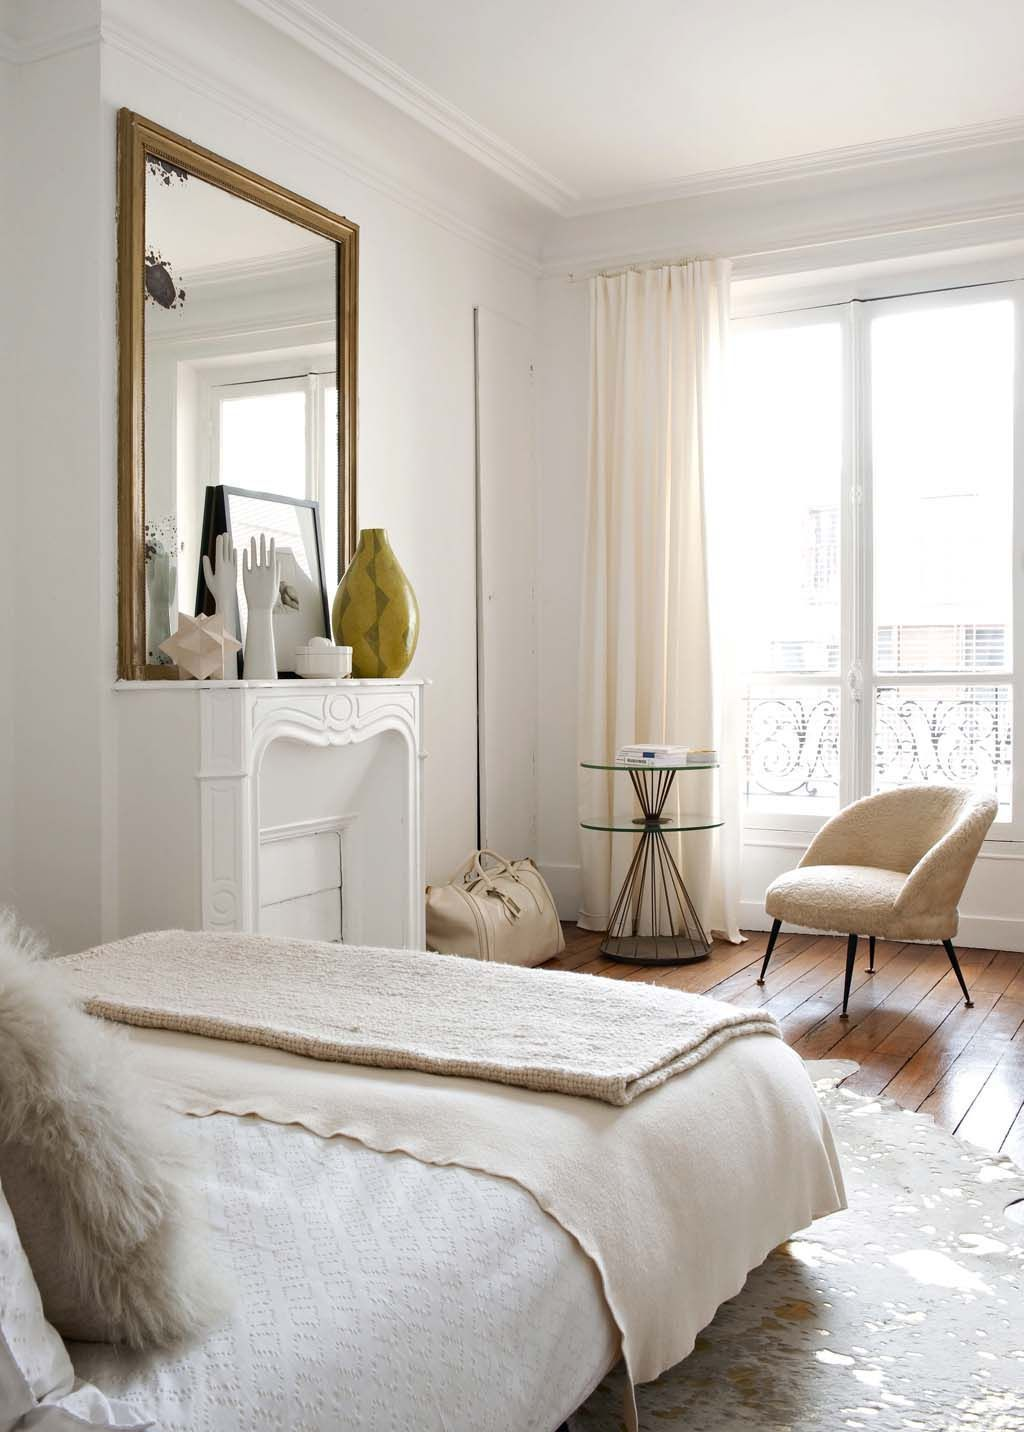 Parisian bedroom with beige accent chair via CoteMaison Emilie Bonaventure